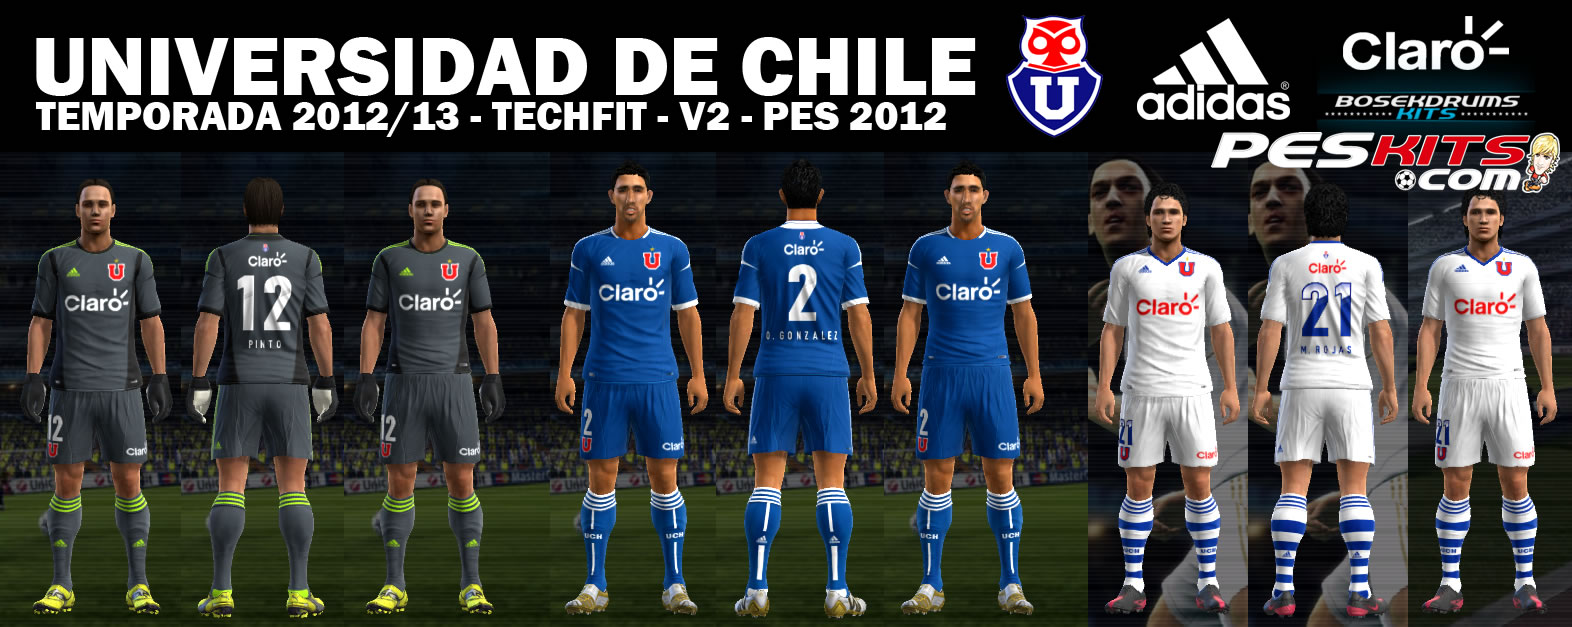 Kits Universidad de Chile 2012 v2 Techfit by Bosekdrums